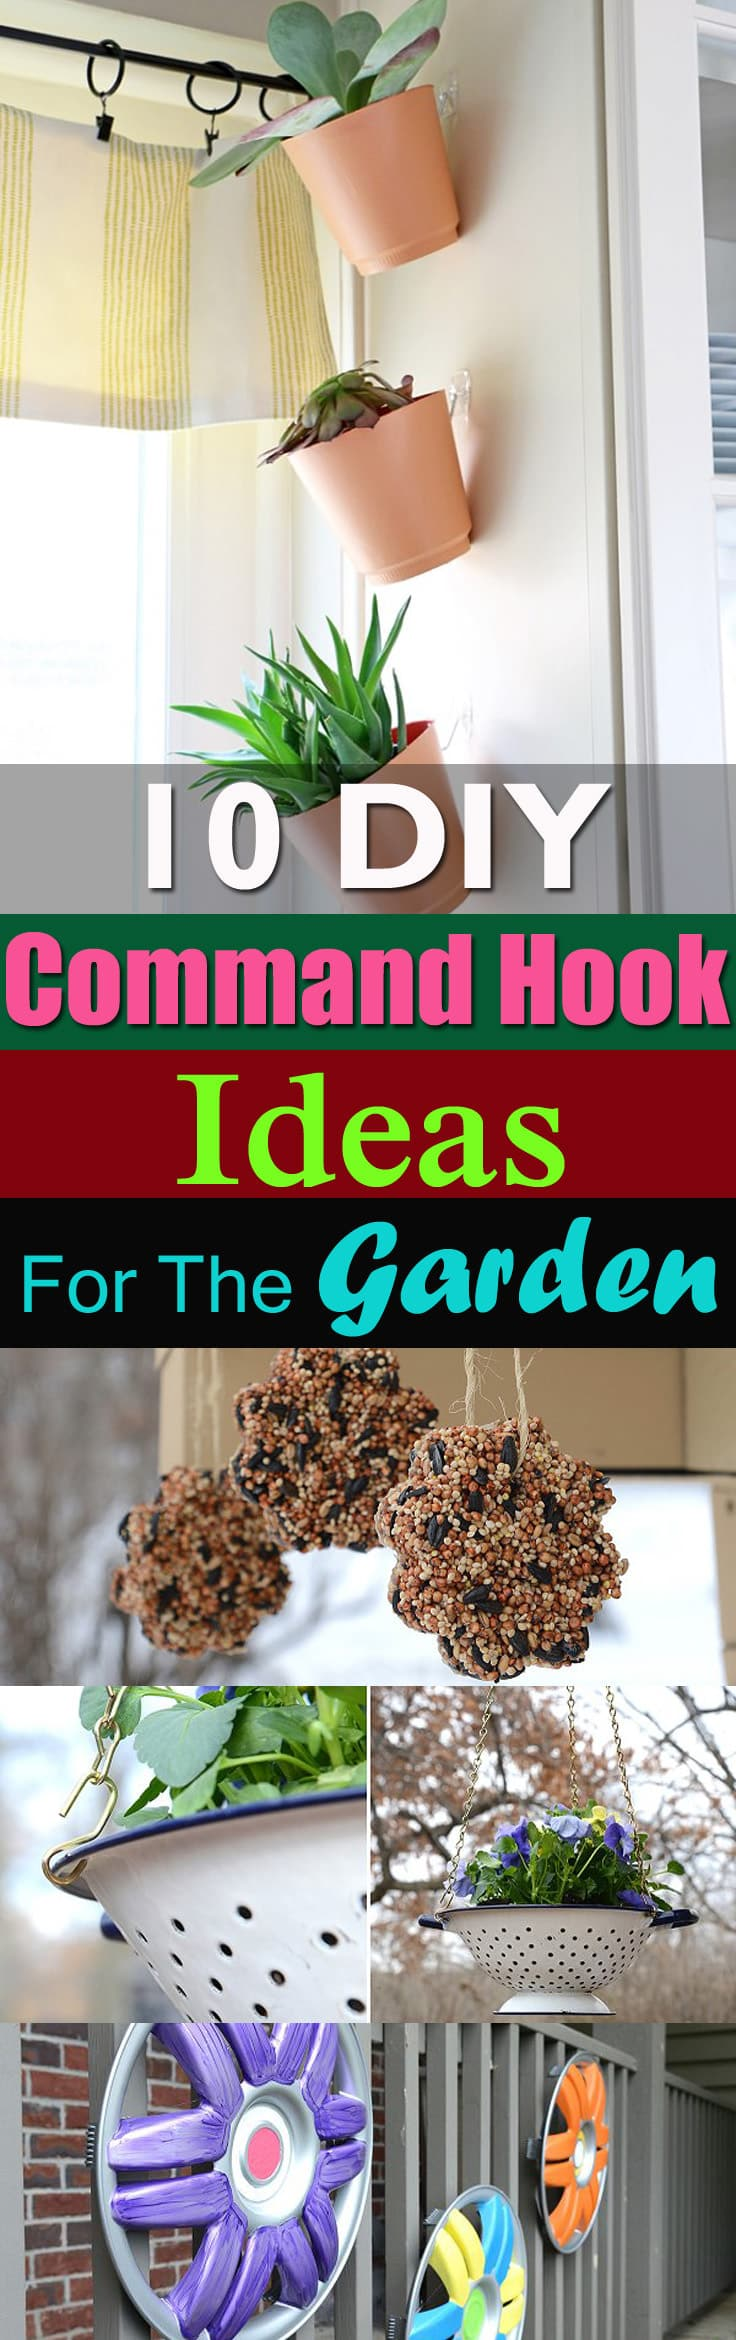 Instead of using hammers and nails, use command hooks to complete these projects. Check out these DIY Command Hook Ideas!